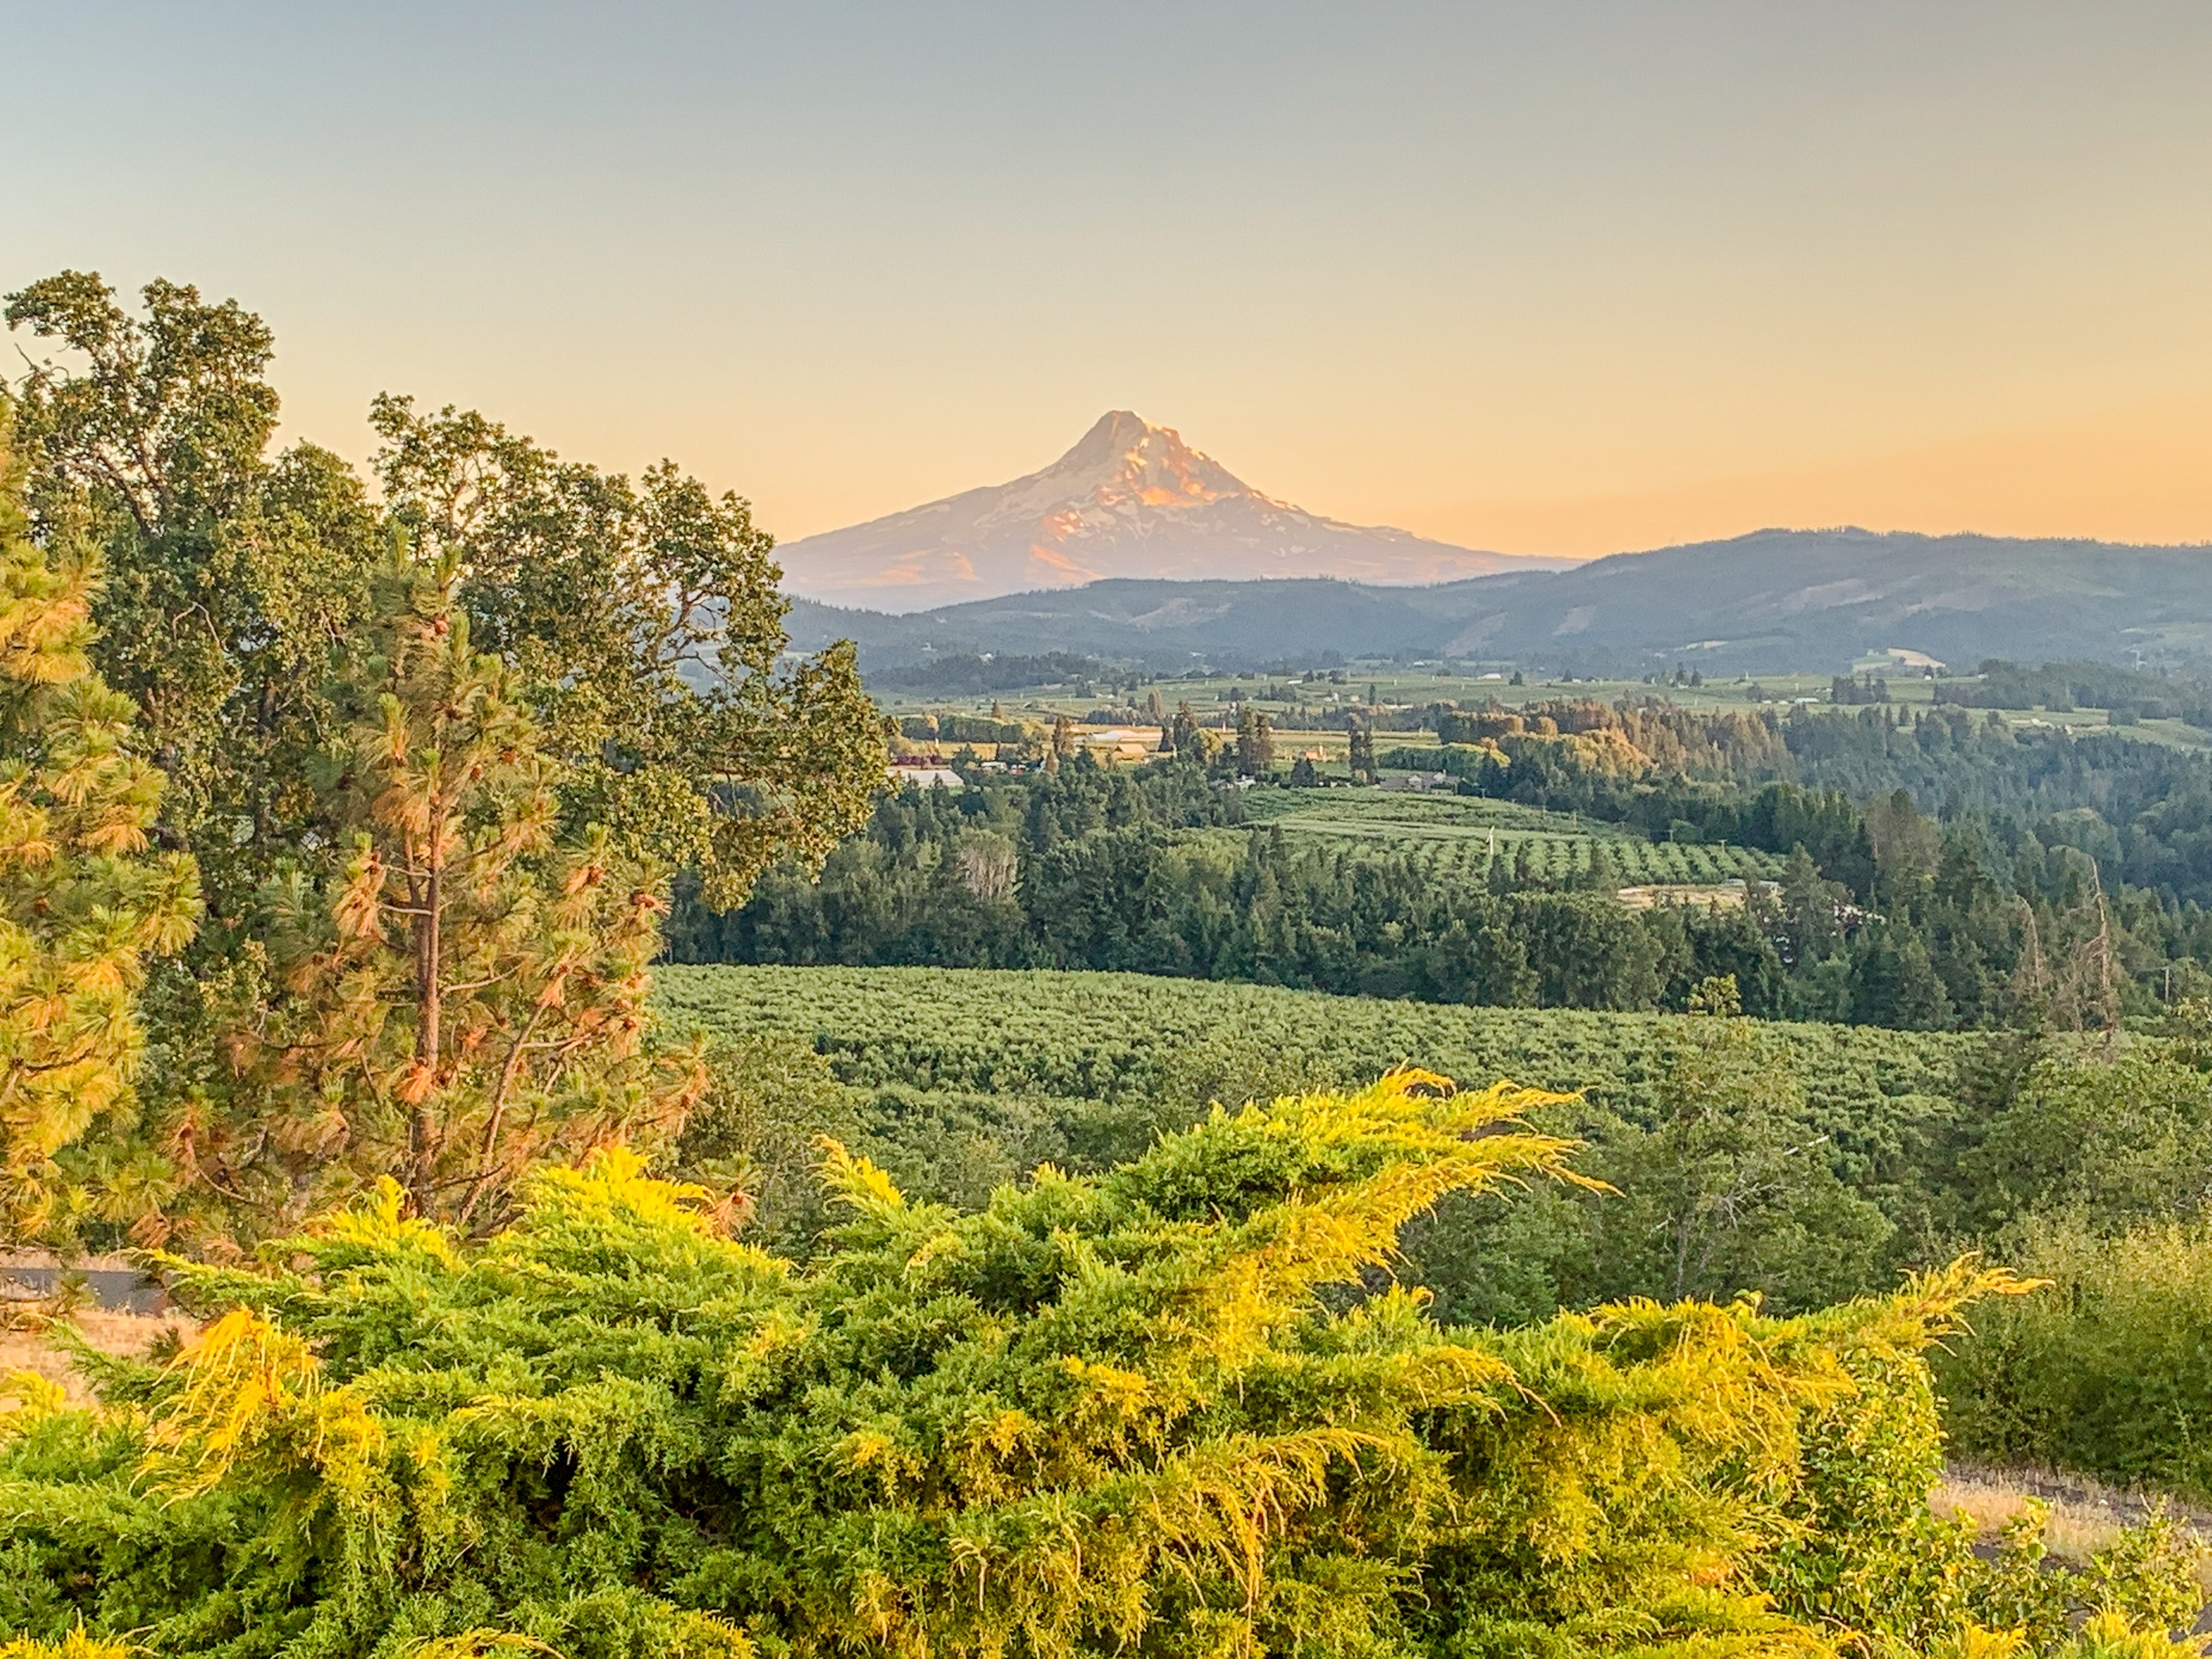 The view from Panorama Point near Hood River Oregon